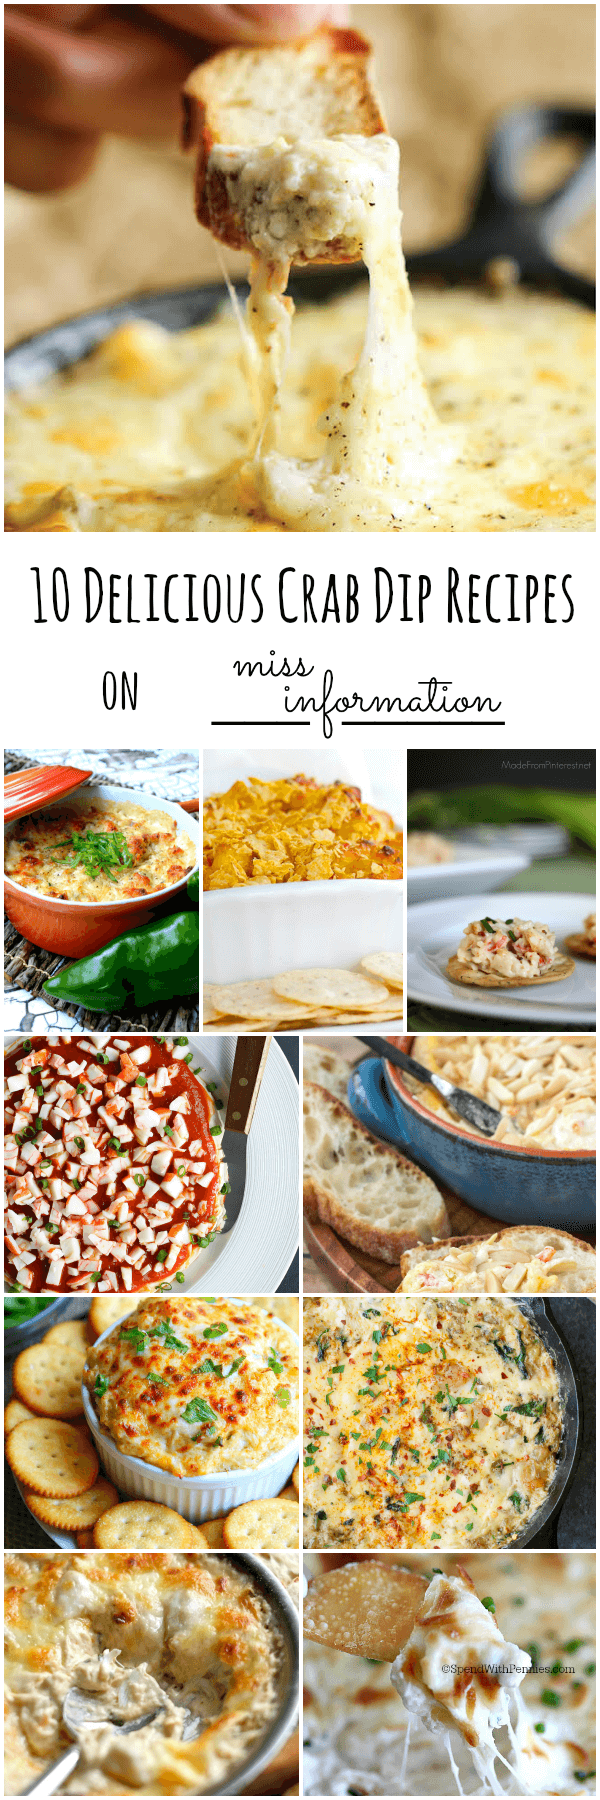 10 mouth watering crab dip recipes that will have you begging for more!